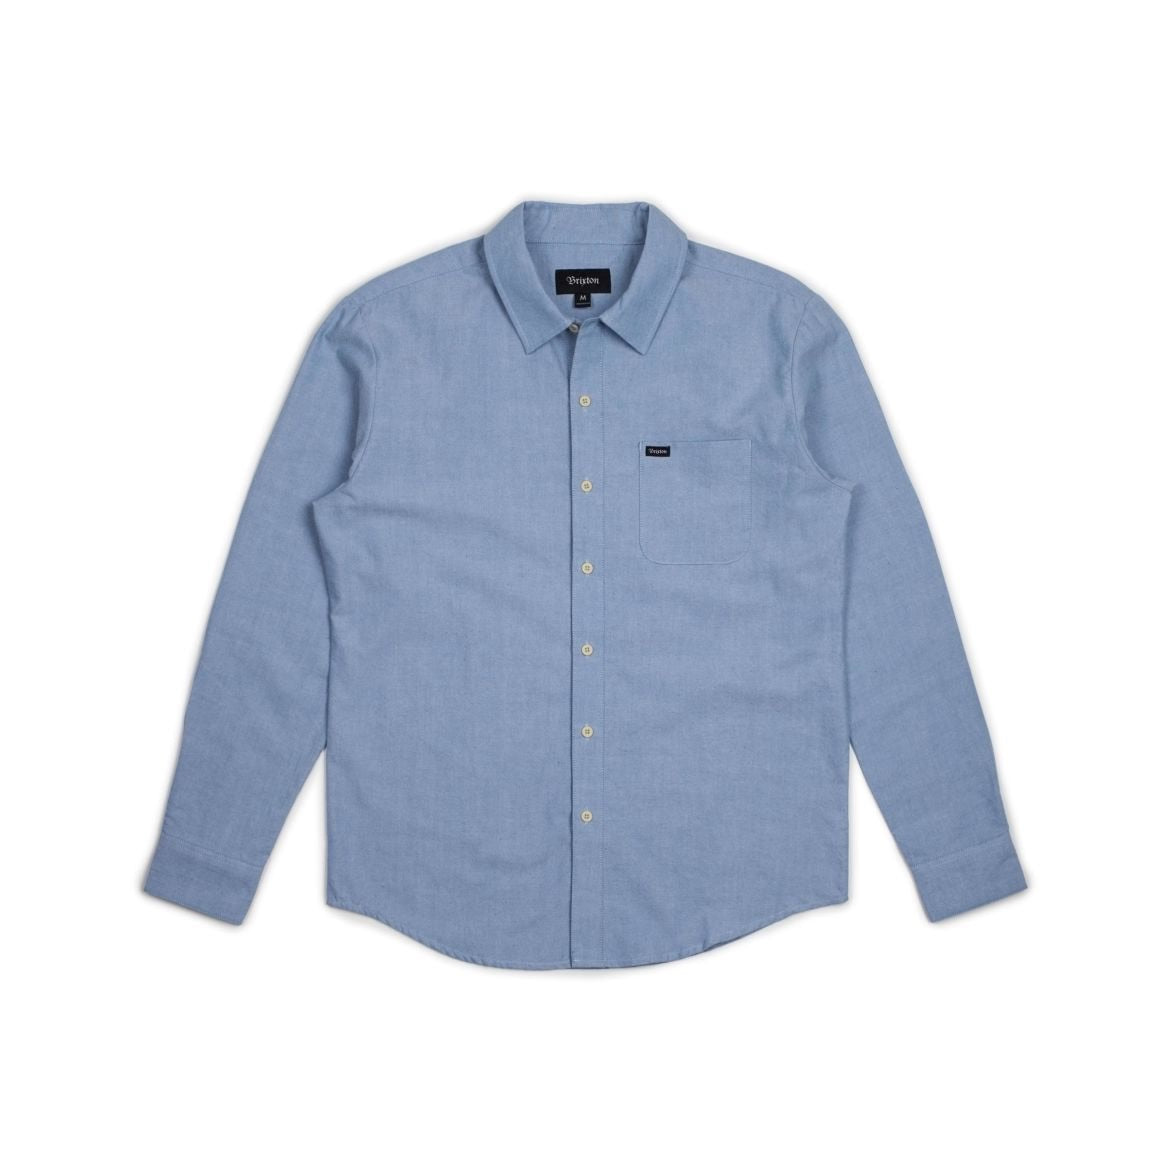 Charter Oxford Chambray